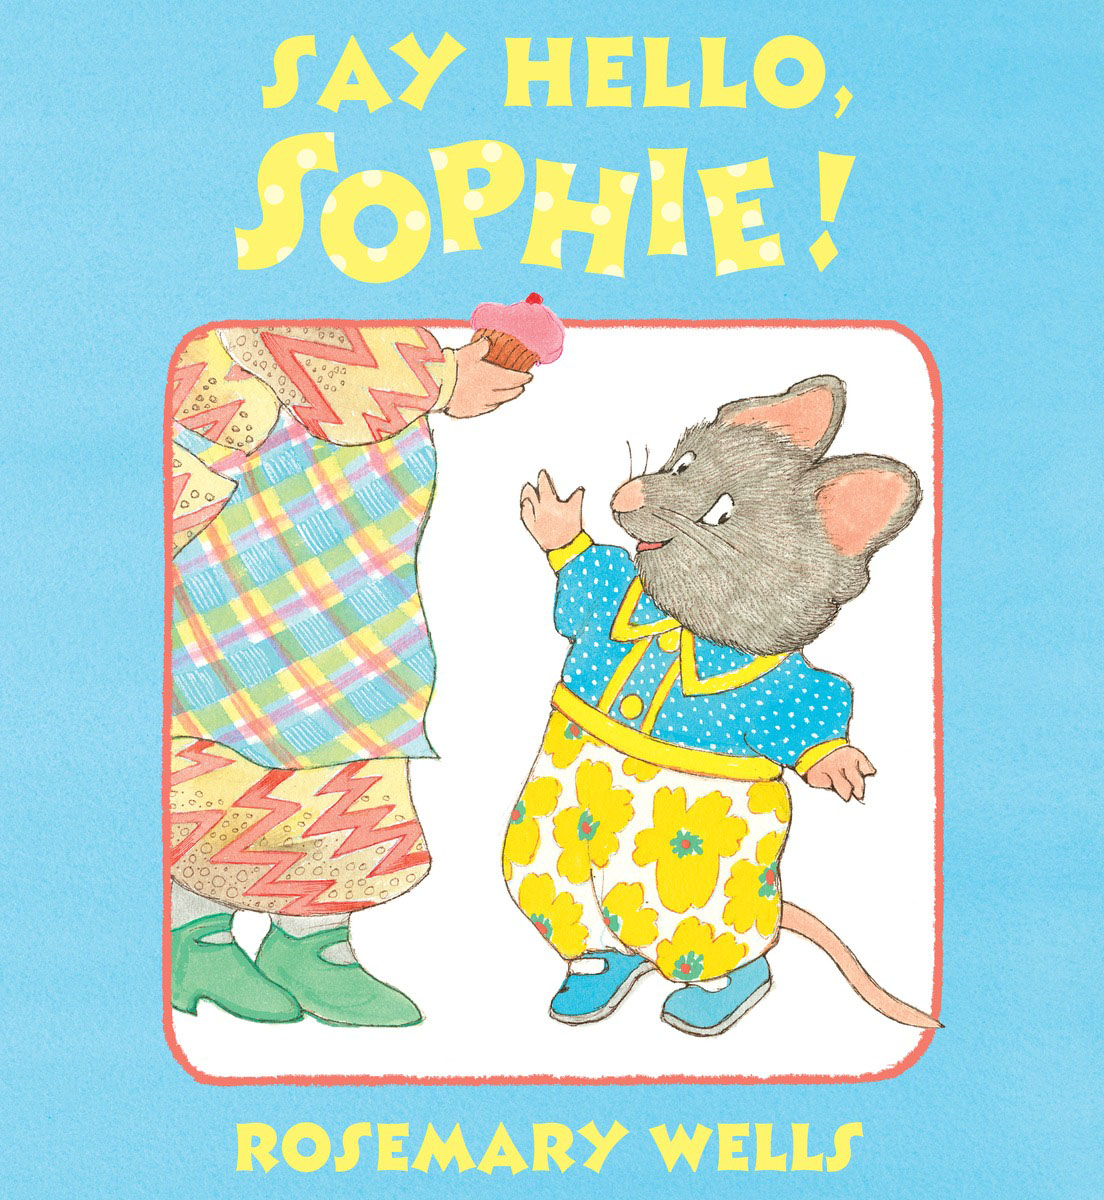 Say Hello, Sophie never say goodbye